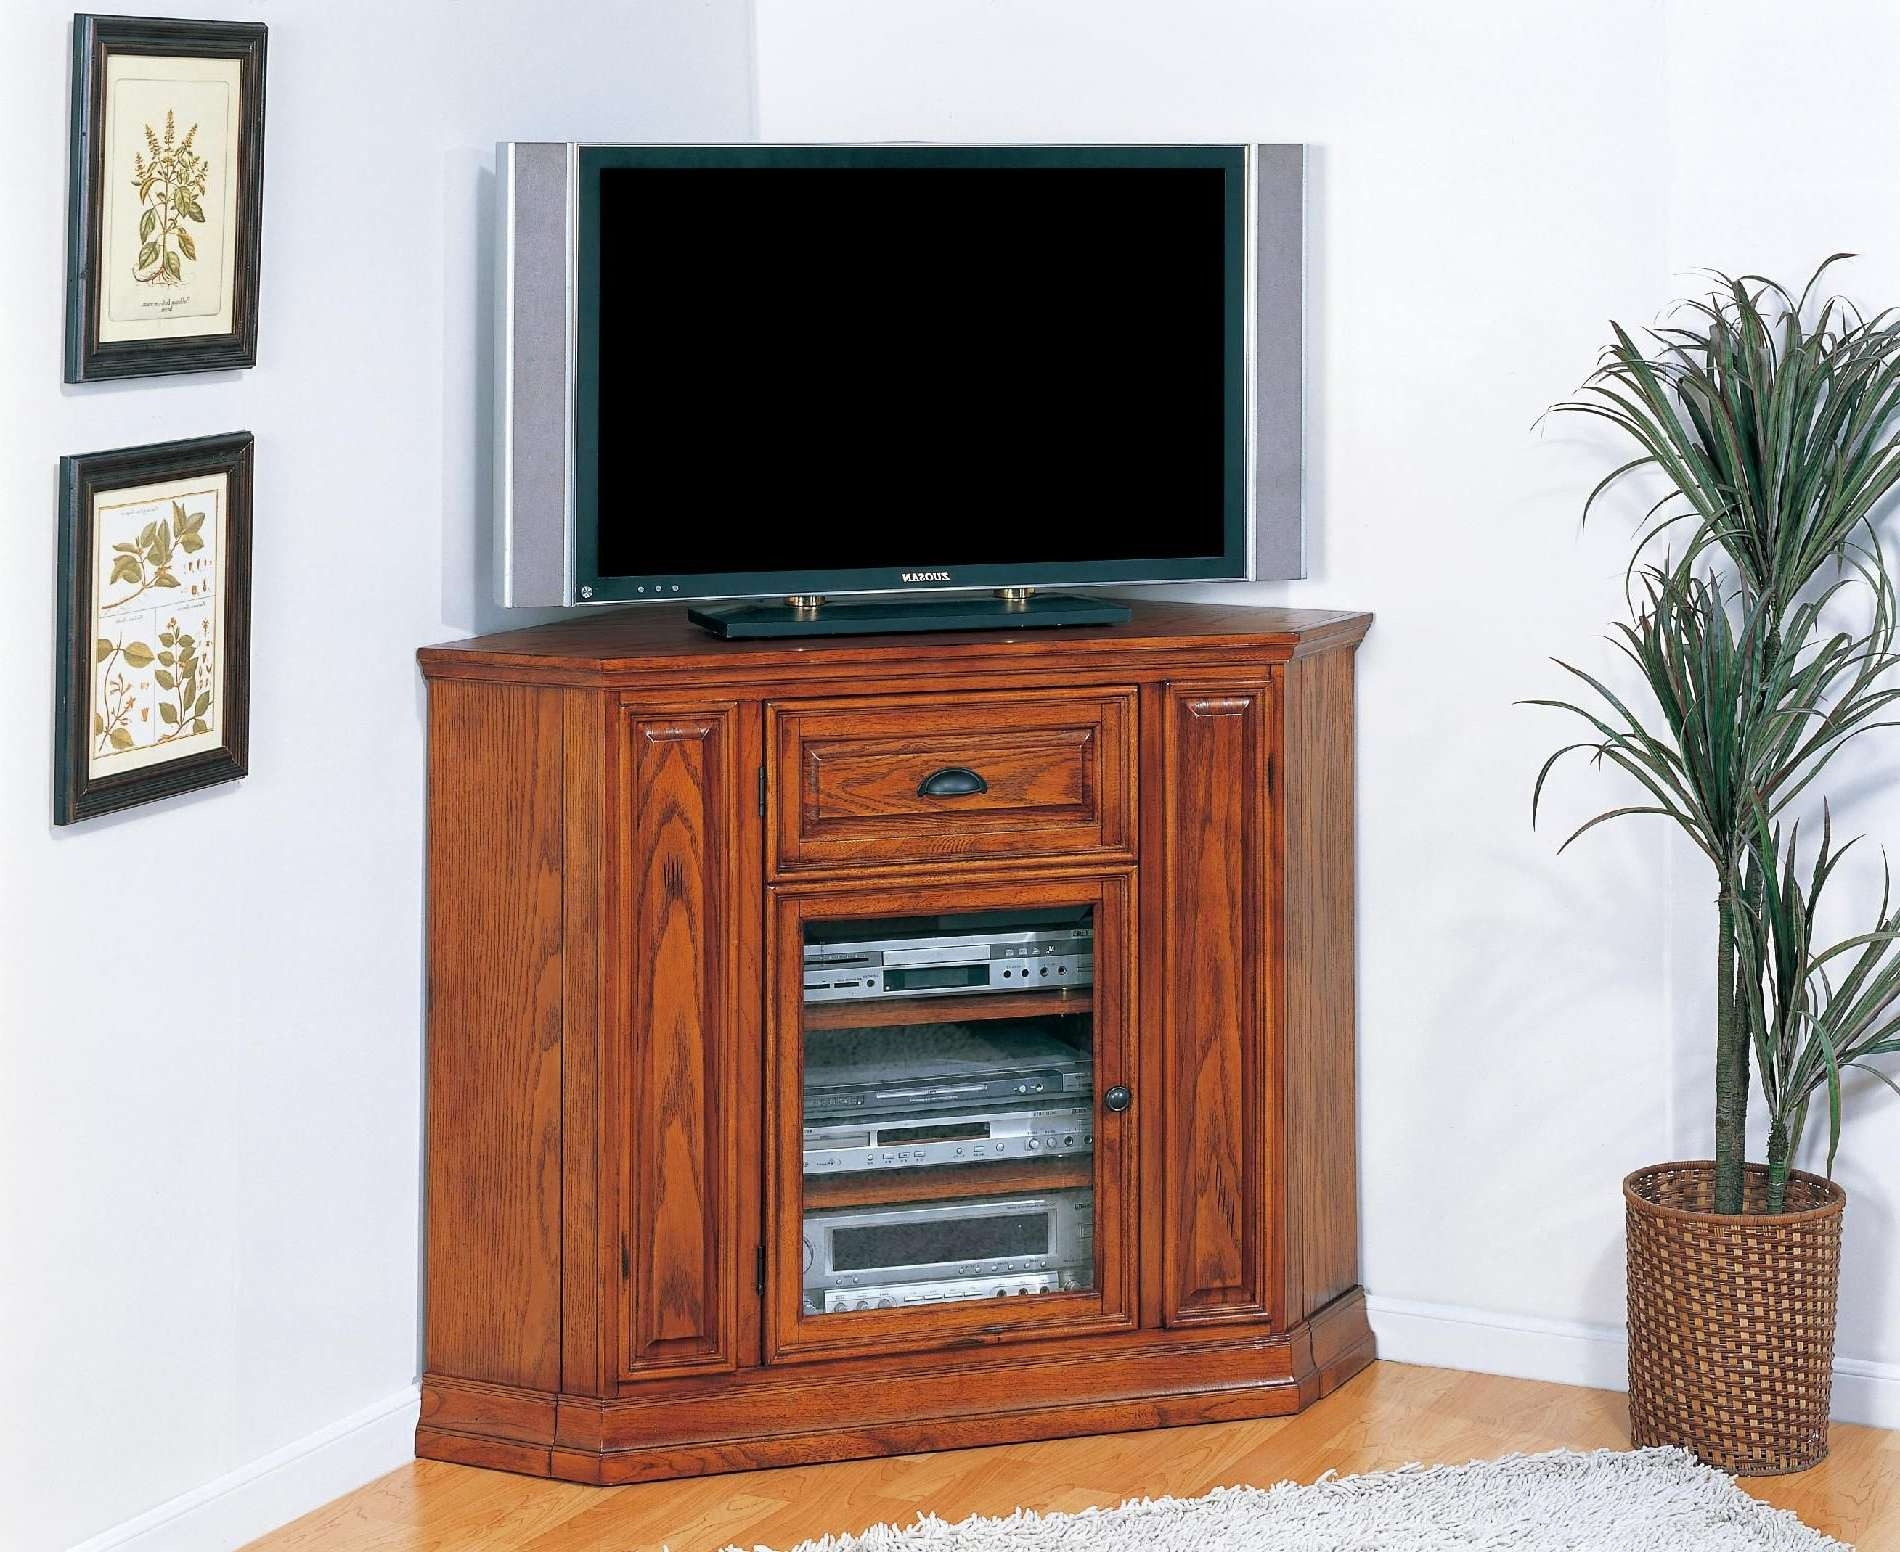 Tall Corner Tv Cabinets For Flat Screens • Corner Cabinets Intended For Corner Tv Cabinets For Flat Screens With Doors (View 10 of 20)